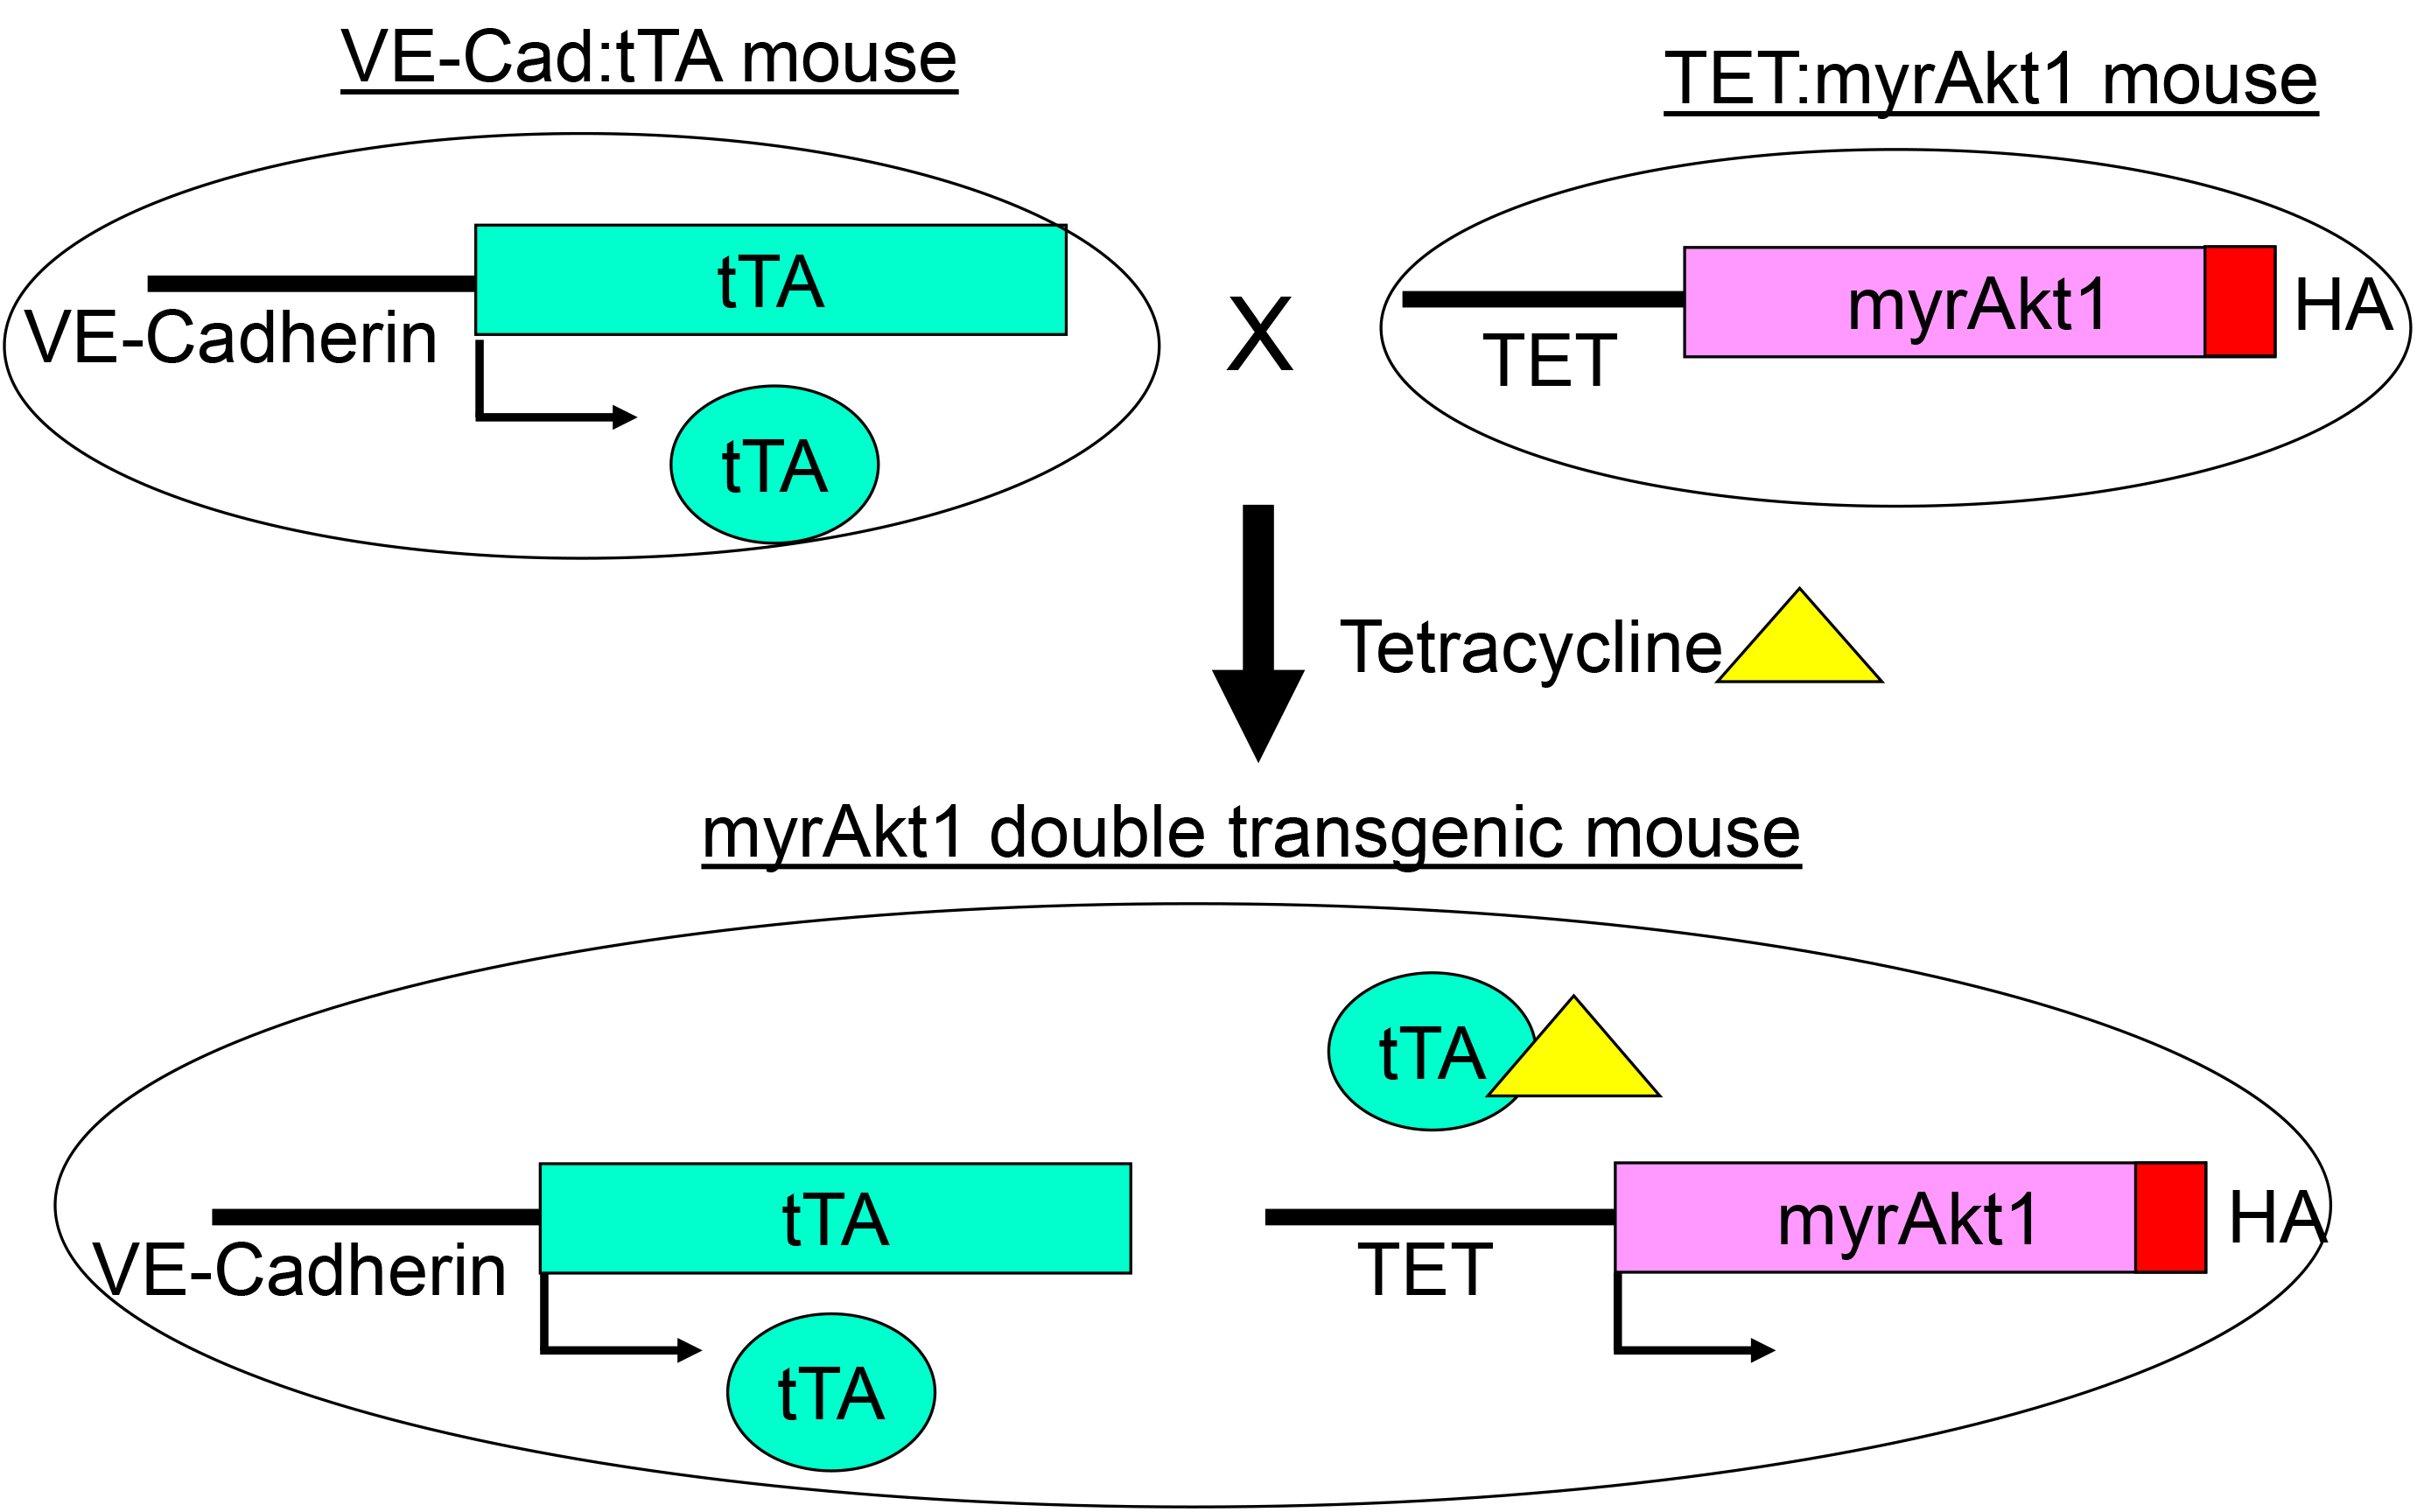 A Novel Mouse Skin Graft Model Of Vascular Tumors Driven By Akt1 Diagram Myrakt1 Double Transgenic The Ve Cadtta Line Contains Cadherin Promoter Cloned Upstream Tetracycline Regulated